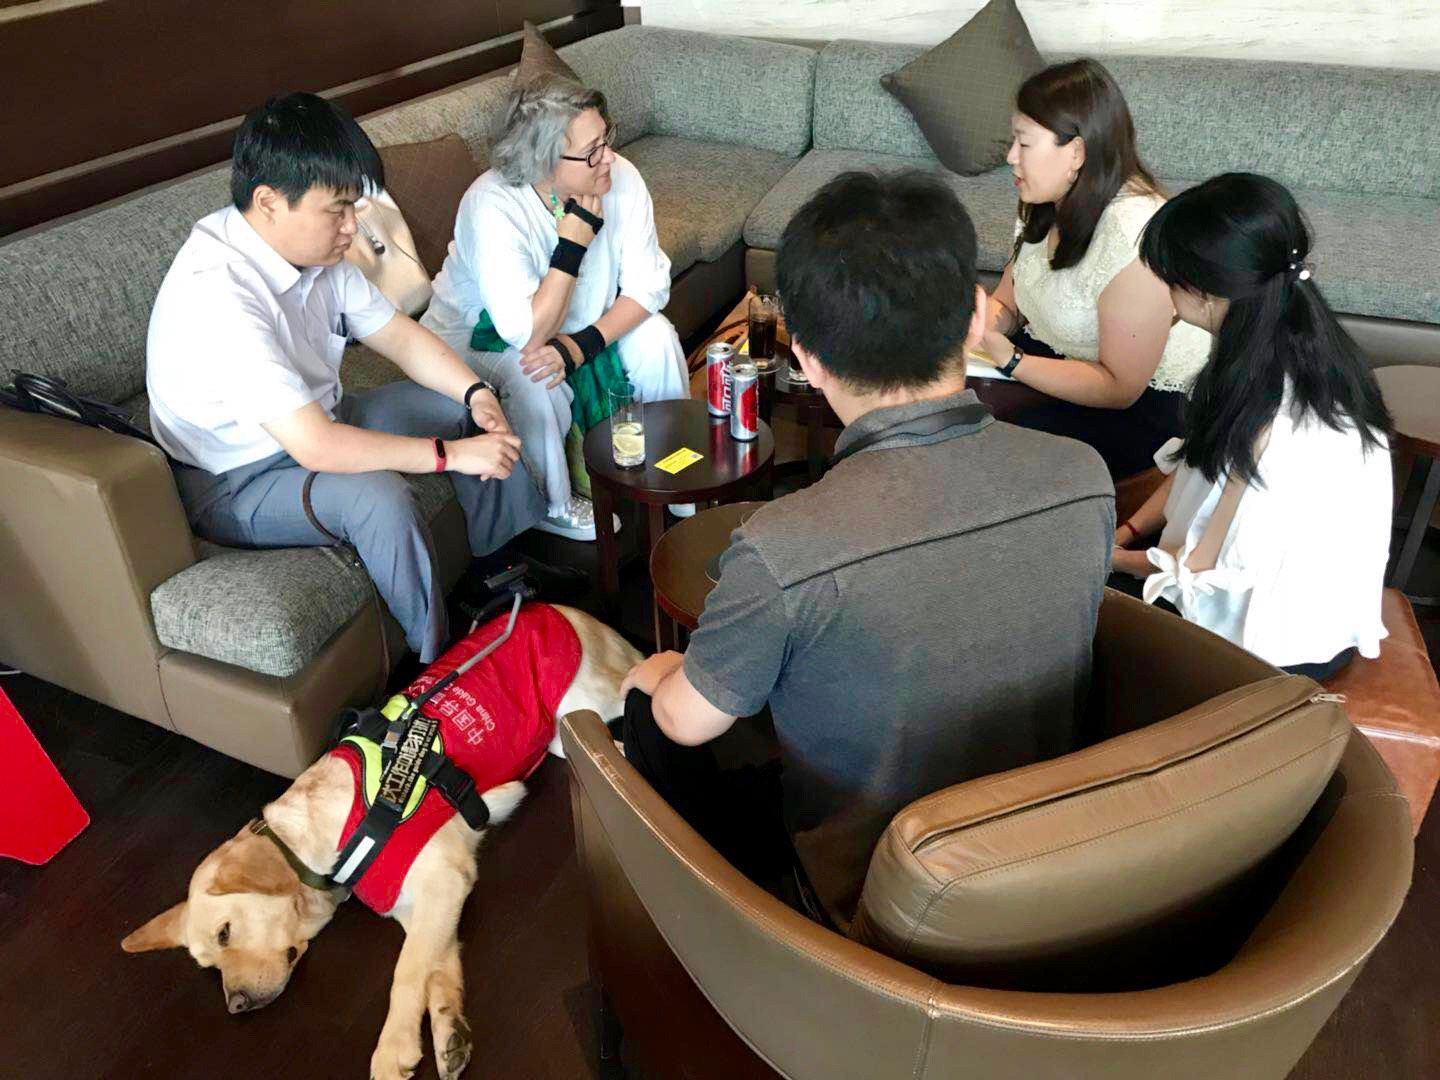 A group of people talking around a table. Most are of Asian descent. there is also a guide dog resting on the floor.